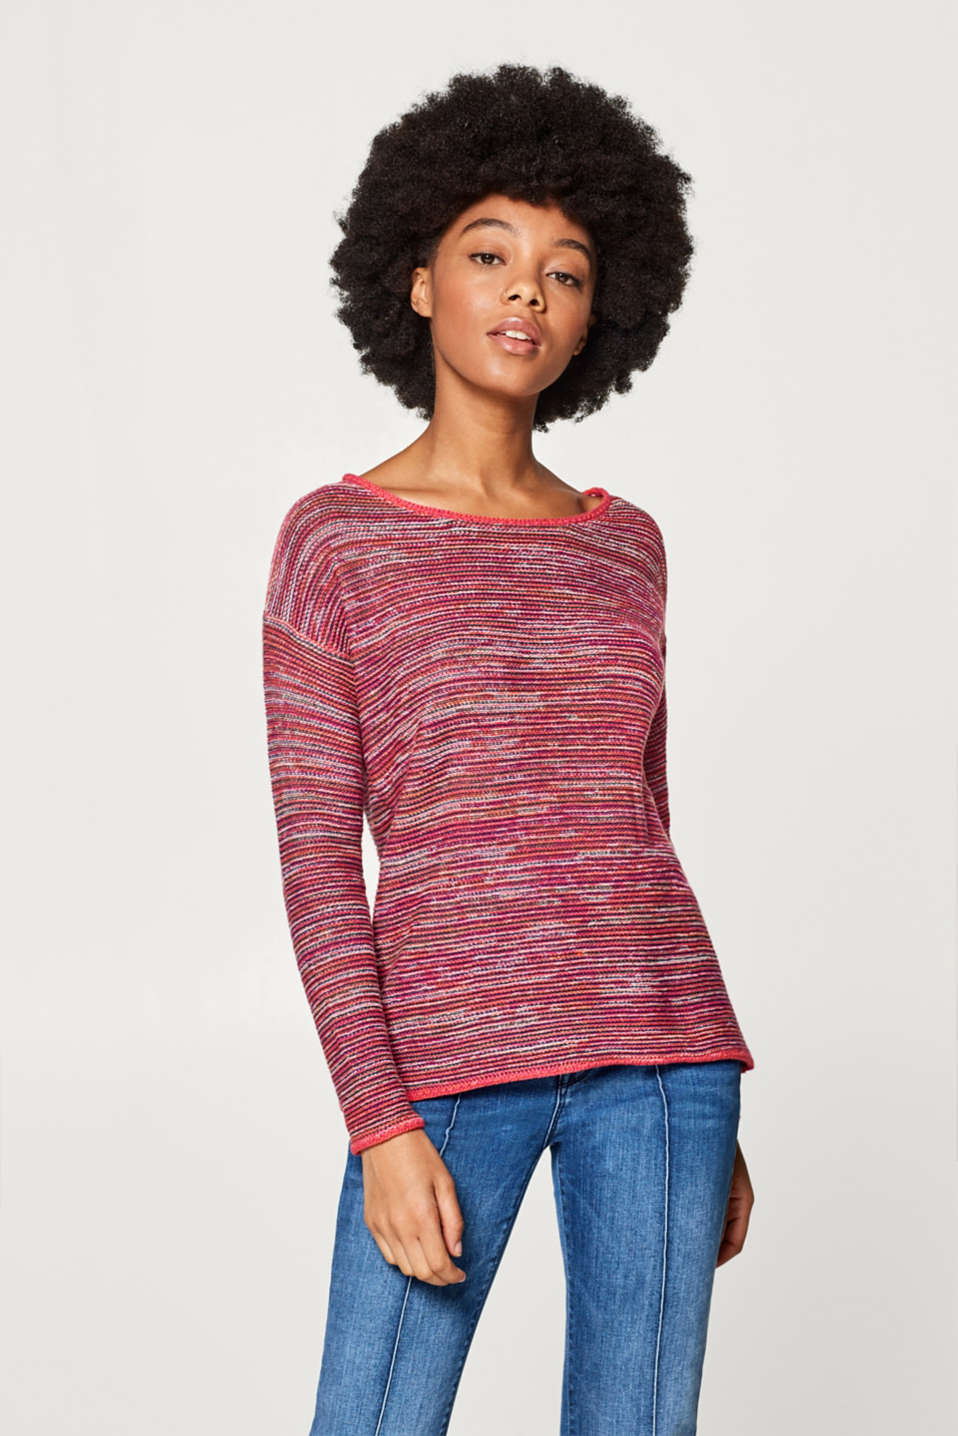 Esprit - Textured, multi-colour jumper, 100% cotton